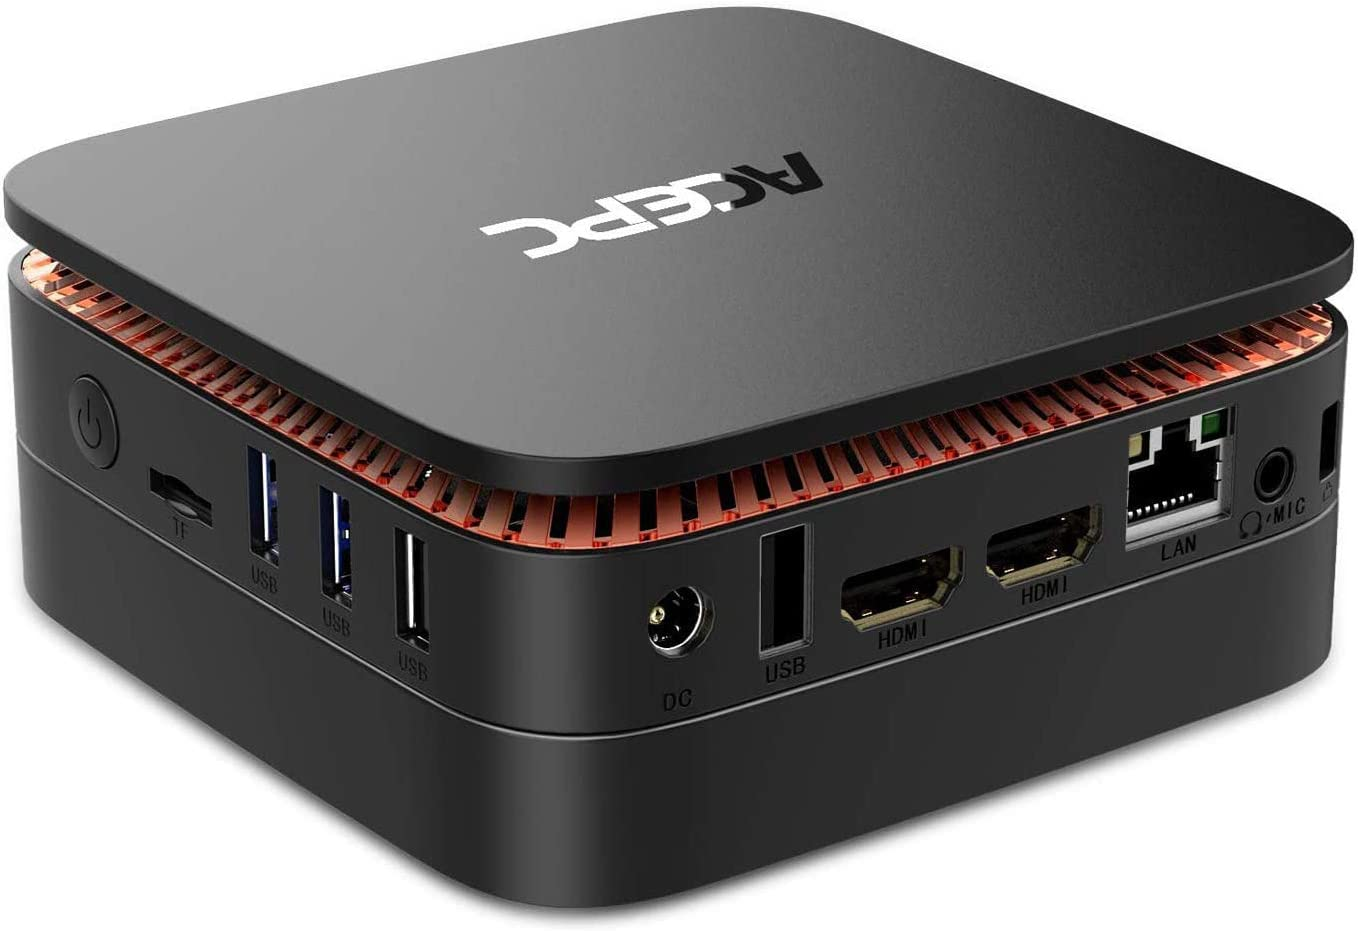 ACEPC AK1 Mini PC,6GB RAM + 120GB SSD,Intel Celeron J3455,Windows 10 (64 bits) Ordenador, Soporte mSATA/2.5 '' SSD/HDD/4K/2.4G+5G Band WiFi/Gigabit Ethernet/Bluetooth 4.2